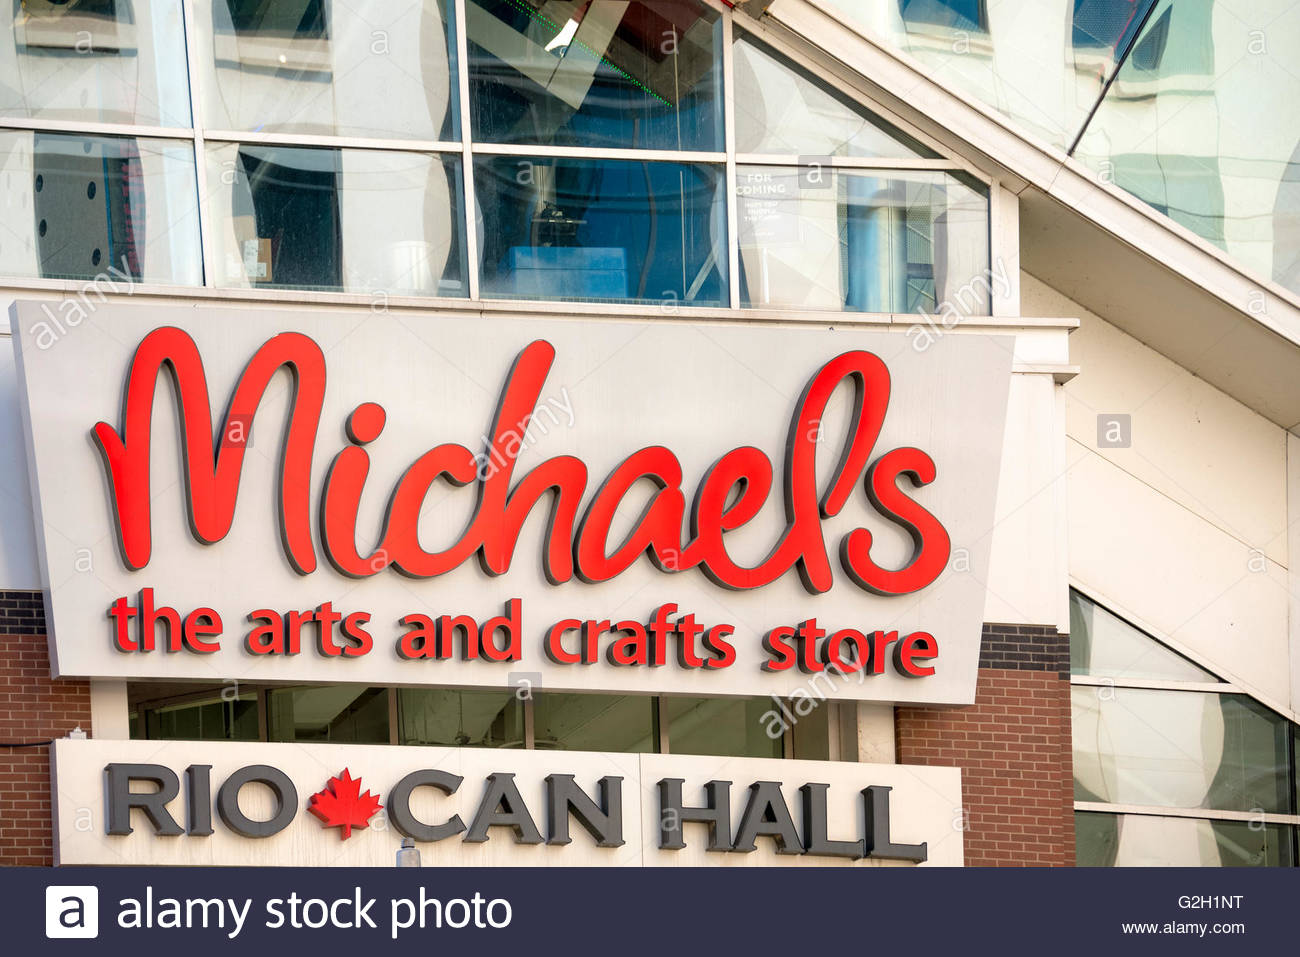 Michaels art store in downtown. Michaels is a North American arts and crafts retail chain known for selling high - Stock Image